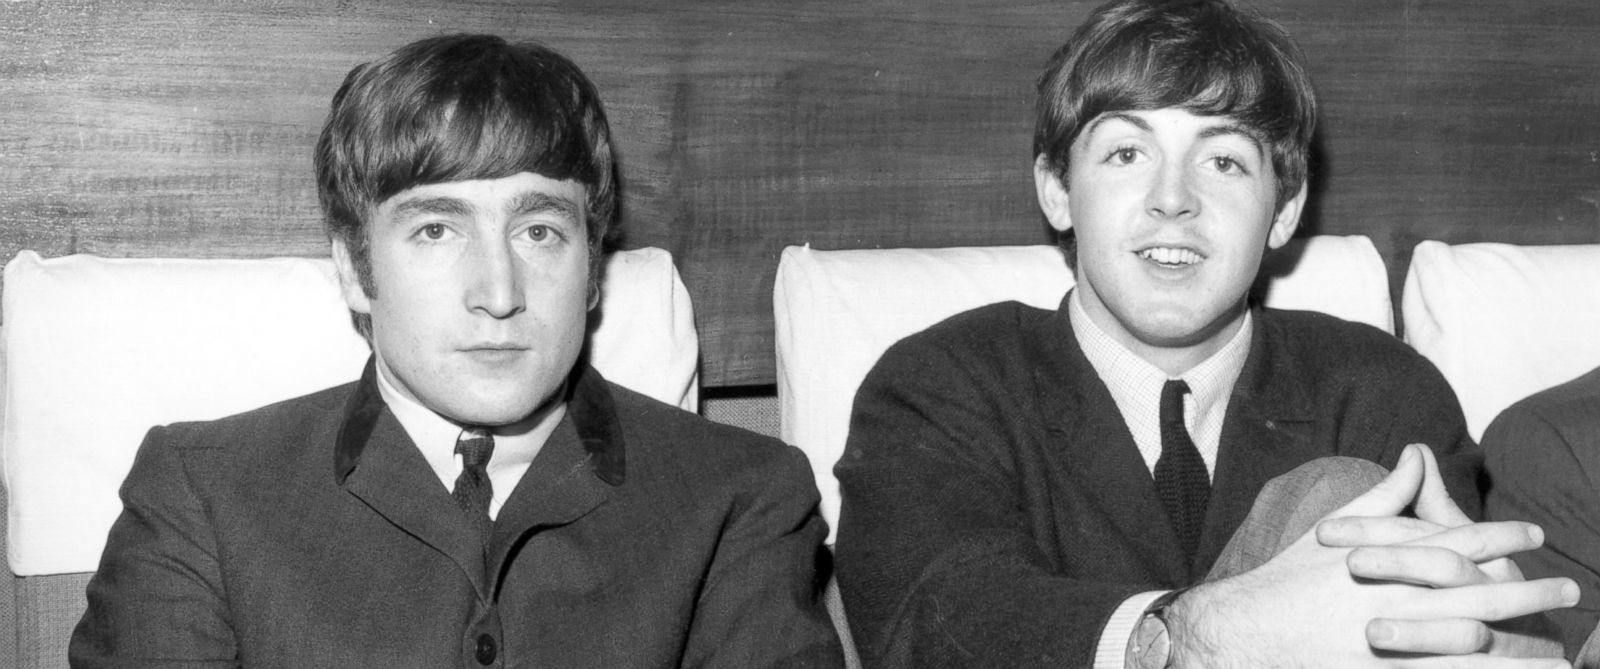 what stood behind the success of beatles in england In an extract from a new anthology of beatles-based writing from the  to reckon  with, the beatles' own success has not been overnight  four years ago when  they started singing together england was  horse with flowered bonnet stands  by the cavern entrance oblivious to the beatniks and the noise.